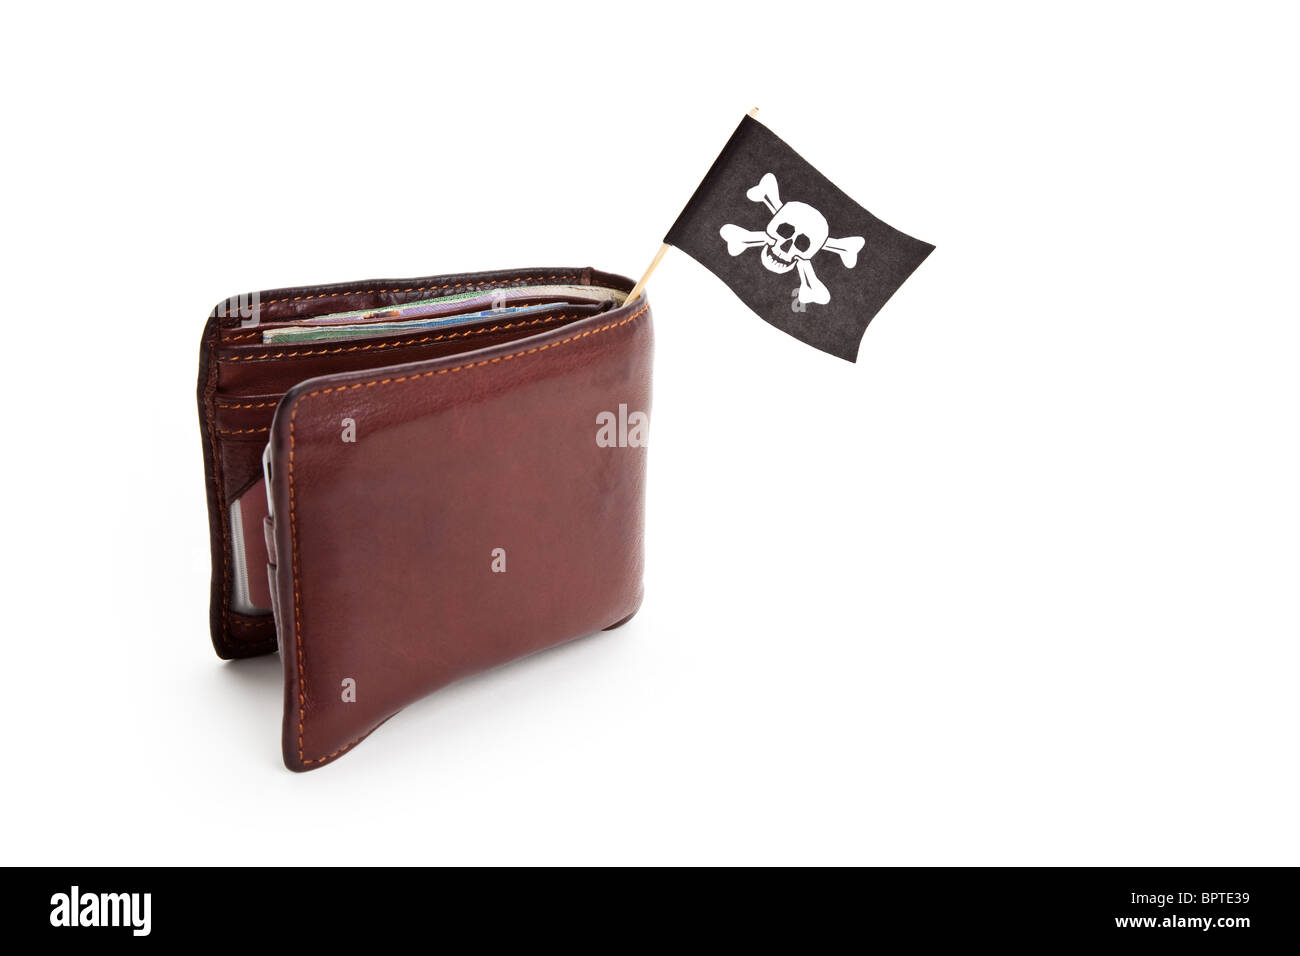 Pirate Flag and Wallet, concept of business crime - Stock Image